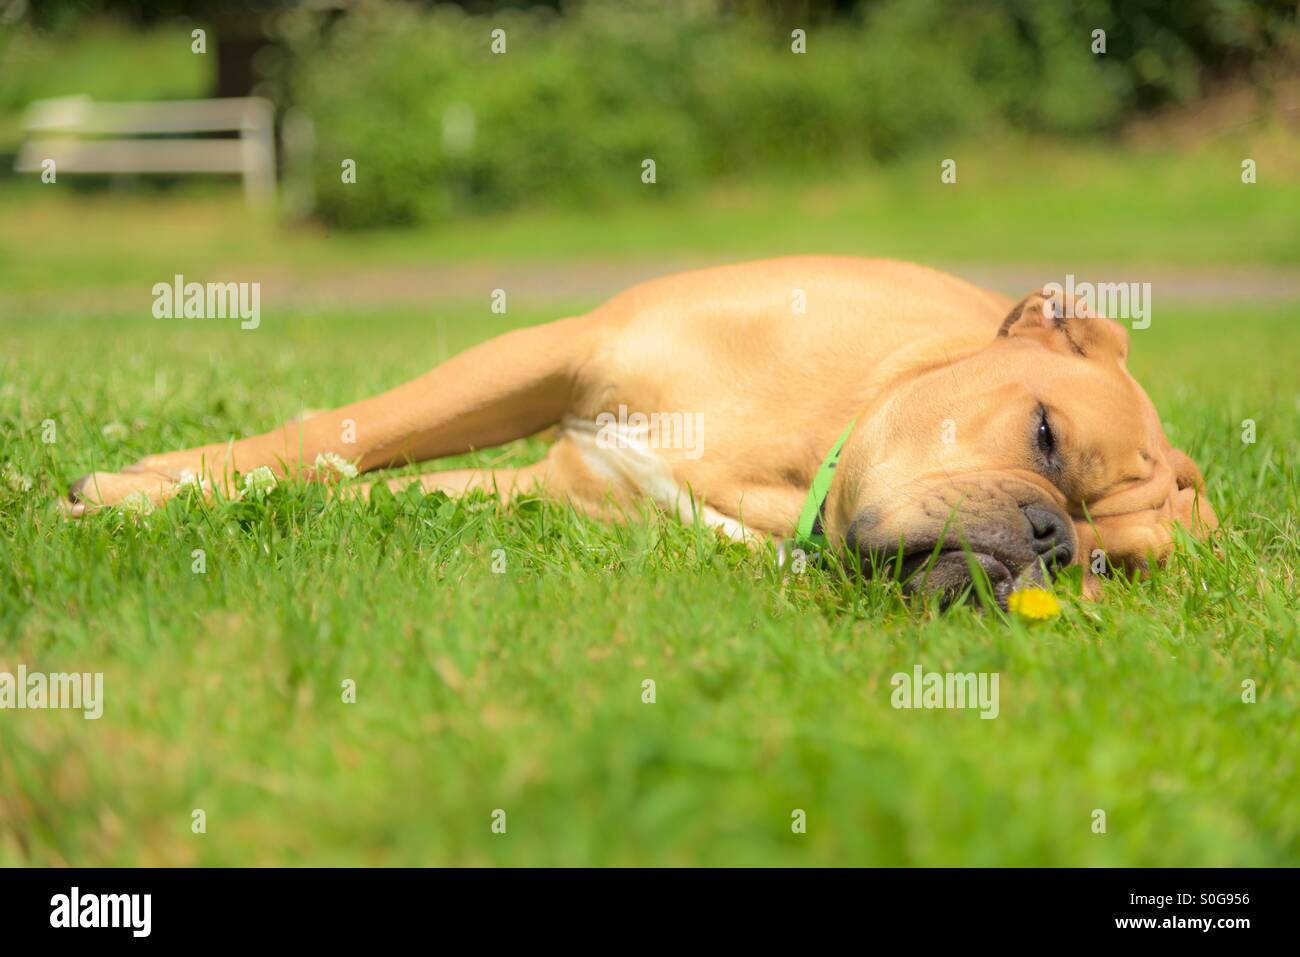 Just chillin' - Stock Image